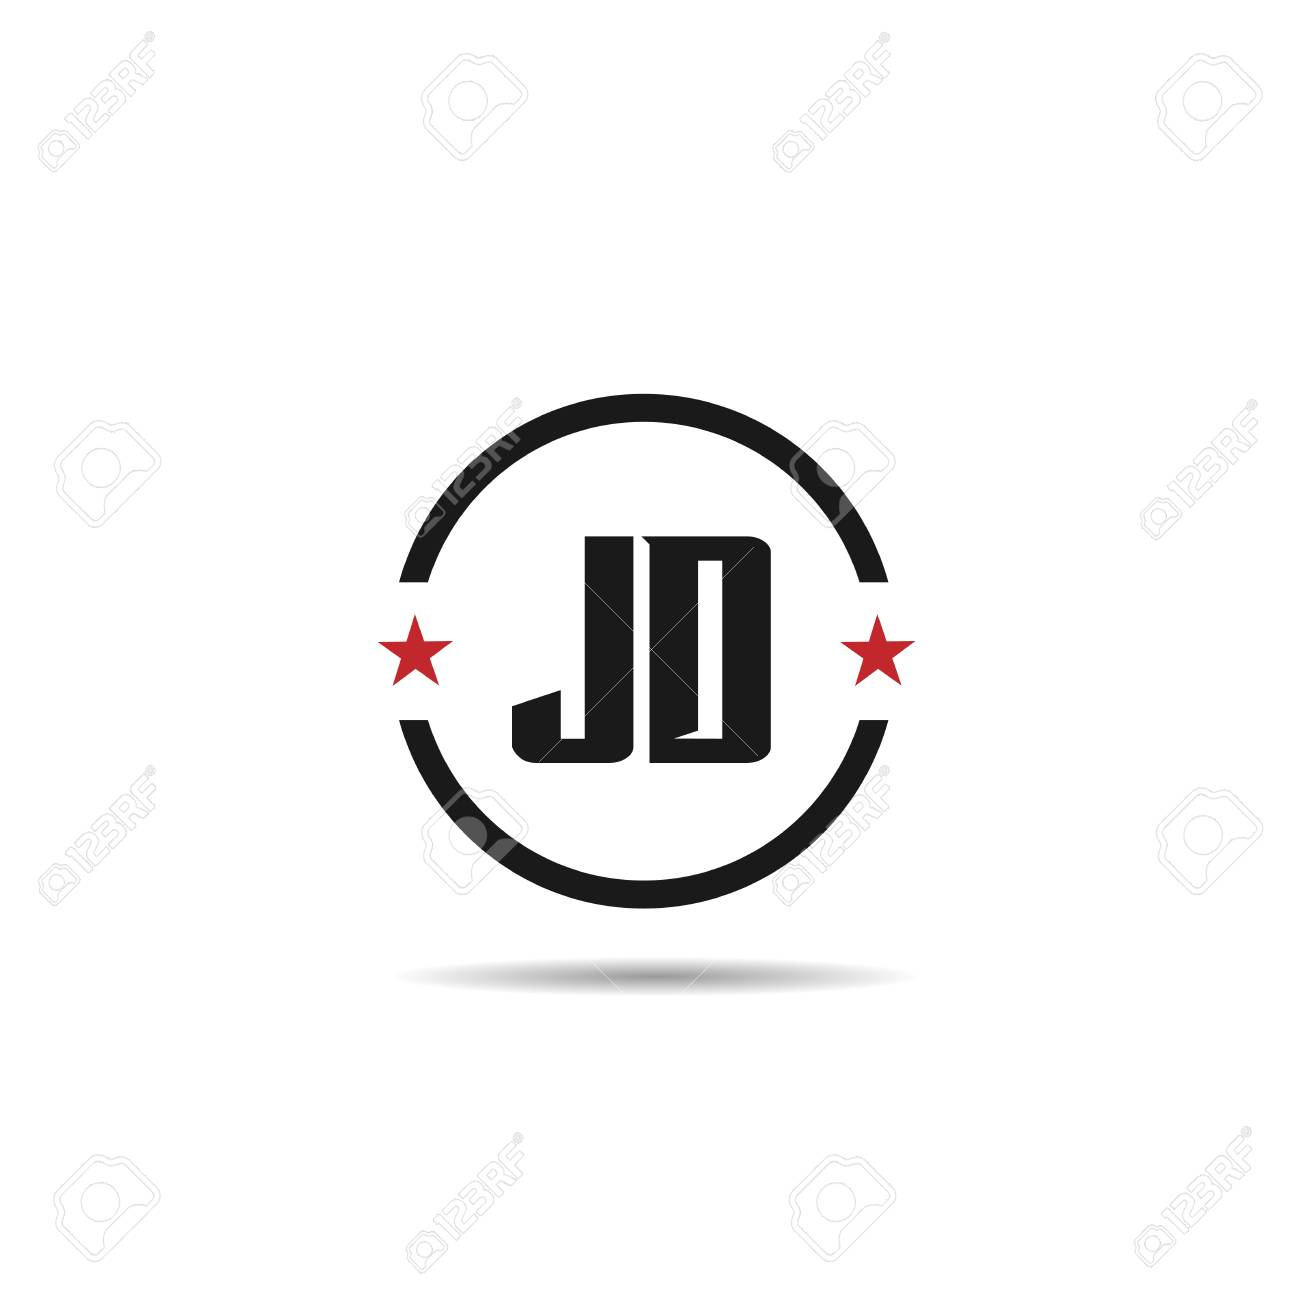 initial letter jd logo template design royalty free cliparts vectors and stock illustration image 109594761 initial letter jd logo template design